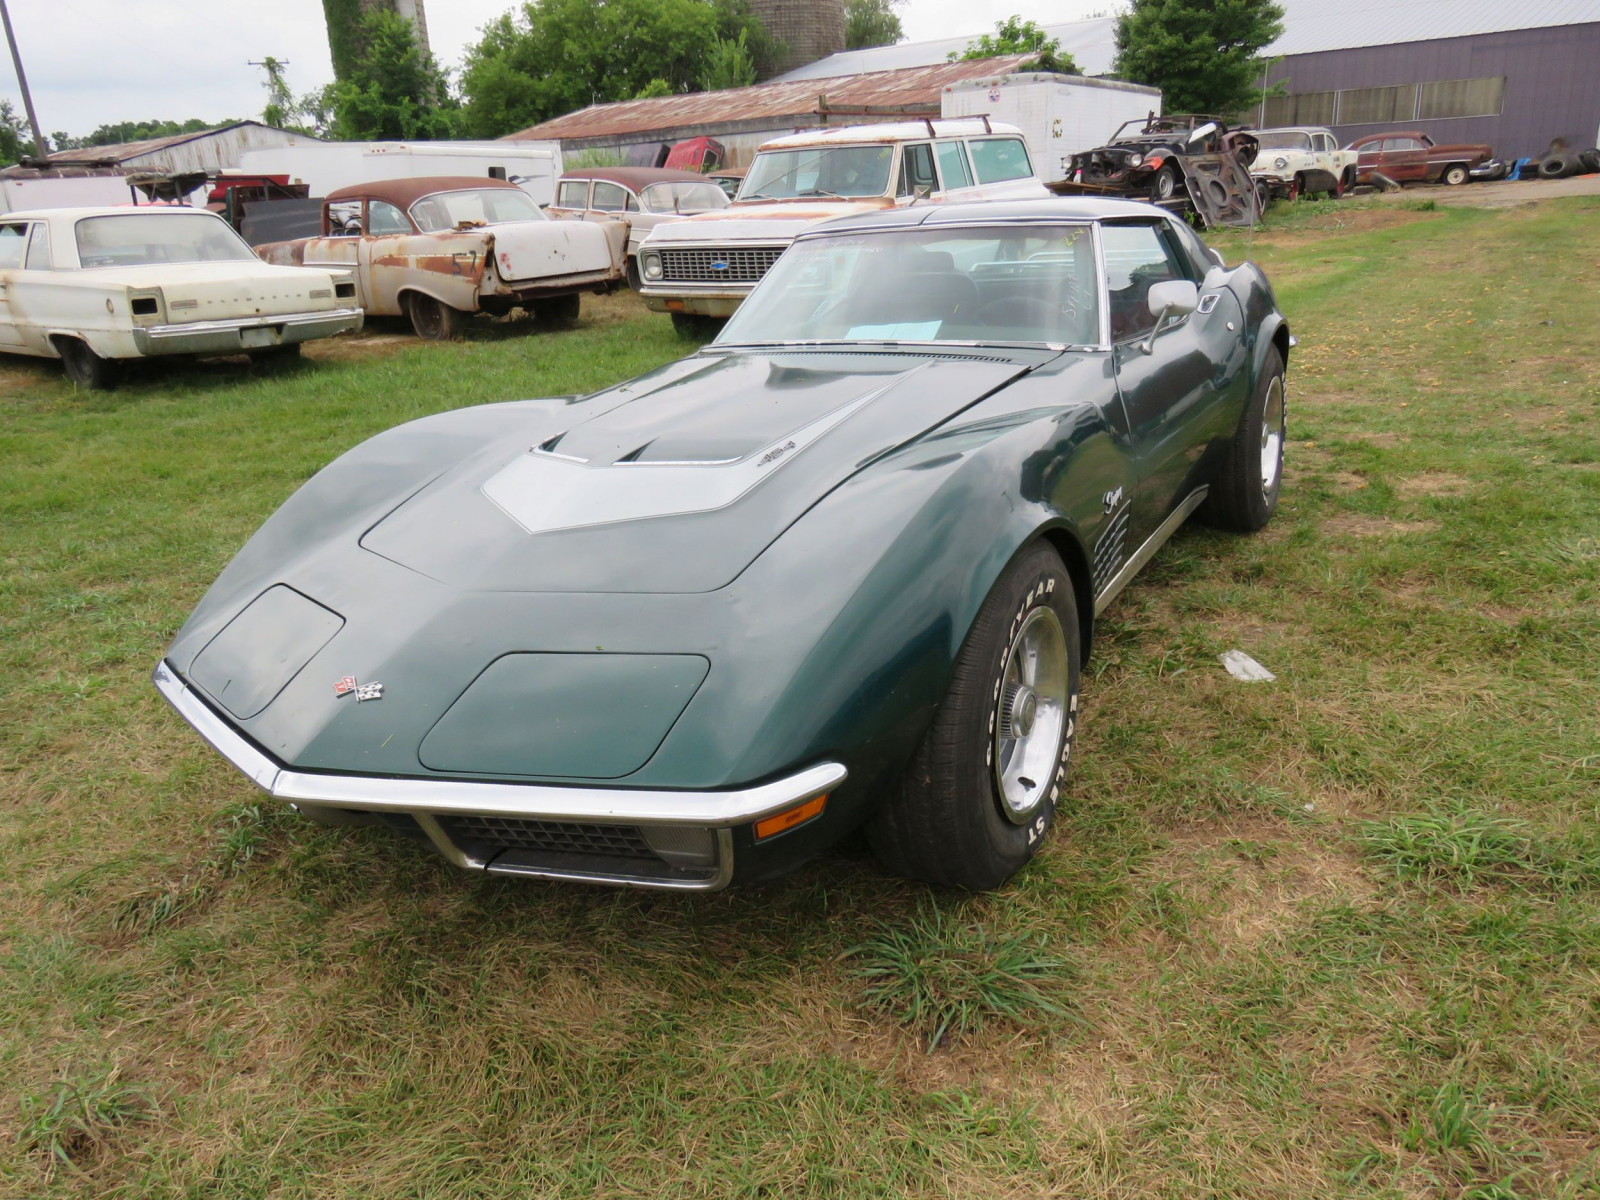 1971 Chevrolet Corvette Stingray Coupe - Image 1